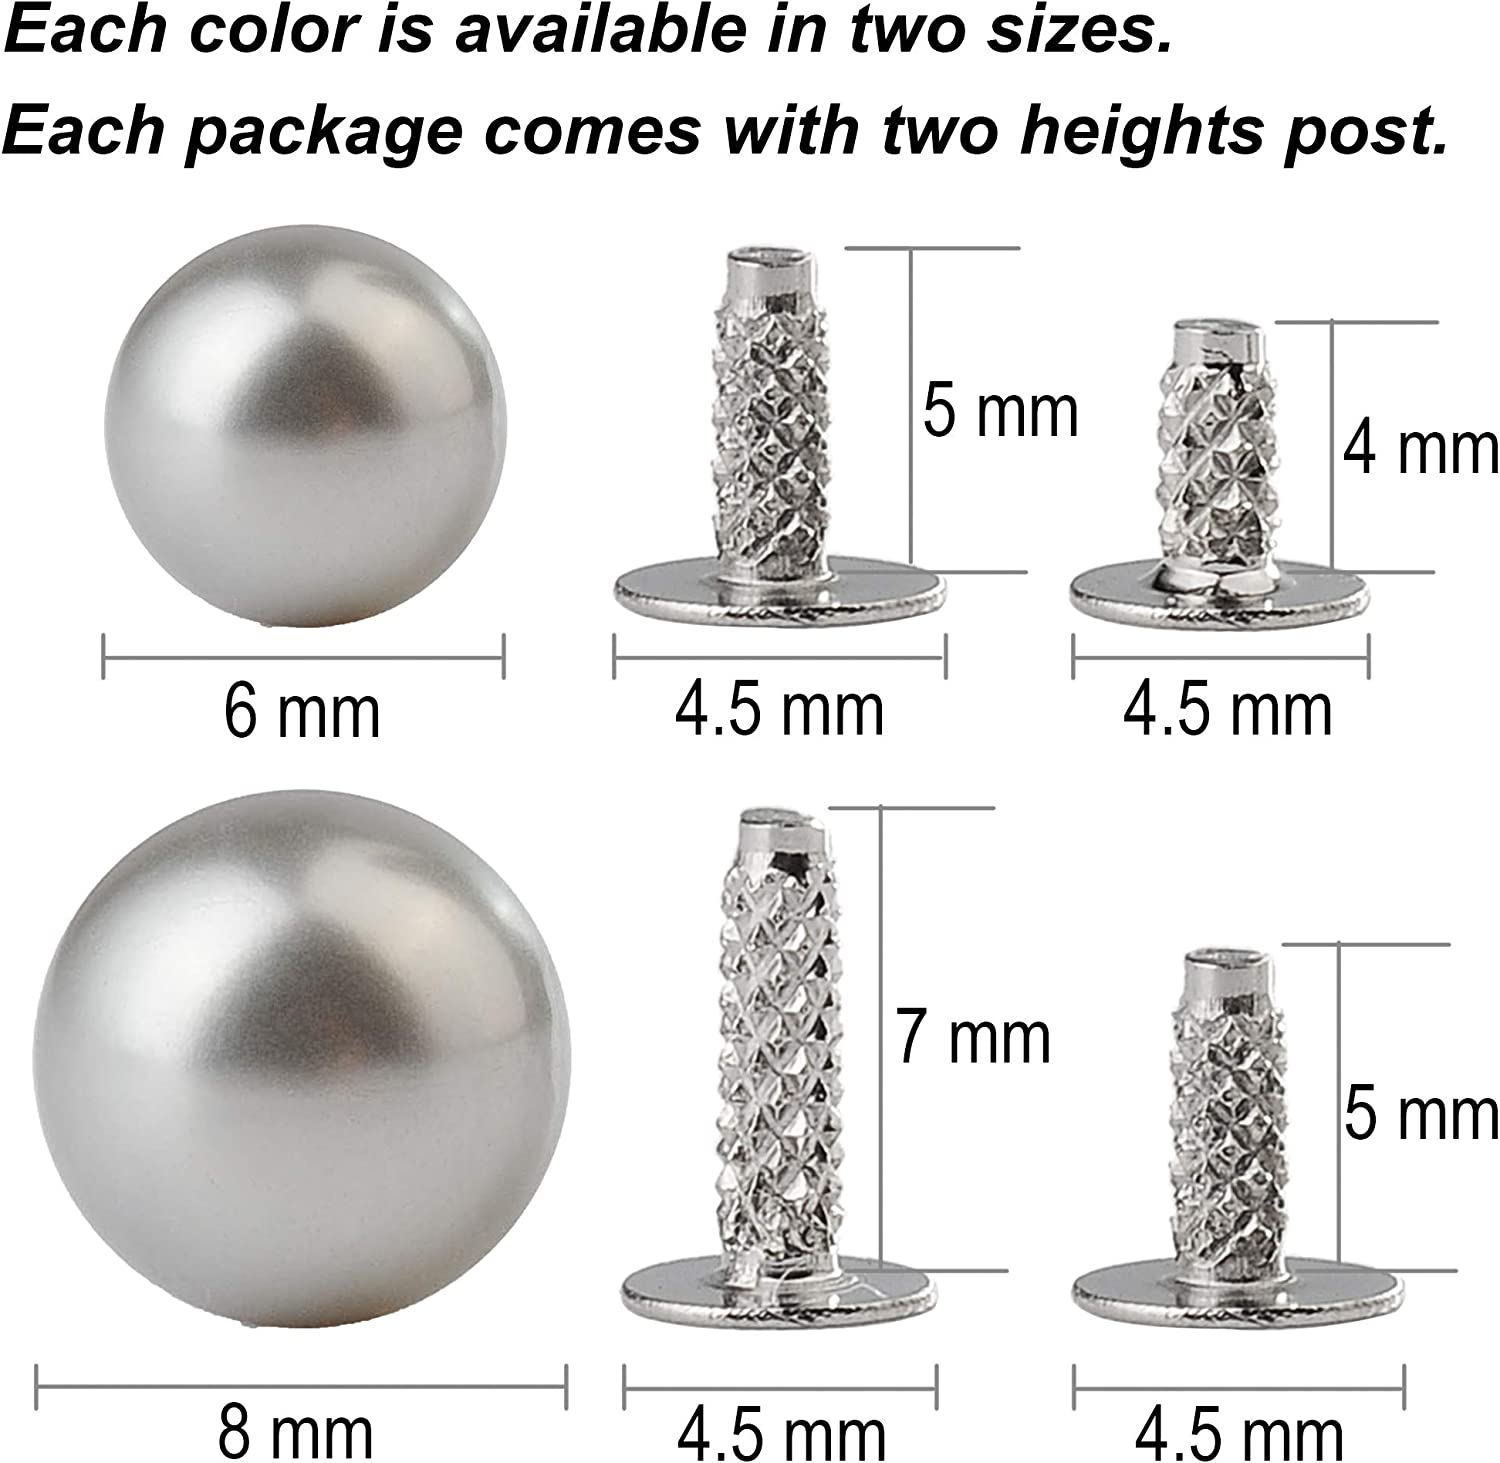 100 Sets 6MM Blue Pearl Rivet Studs for Clothing Imitation Pearl Studs for Clothes Rivet for Leather Craft Shoes Belts Bags Hats Skirts Beads Accessories DIY with 2 Heights of Shank